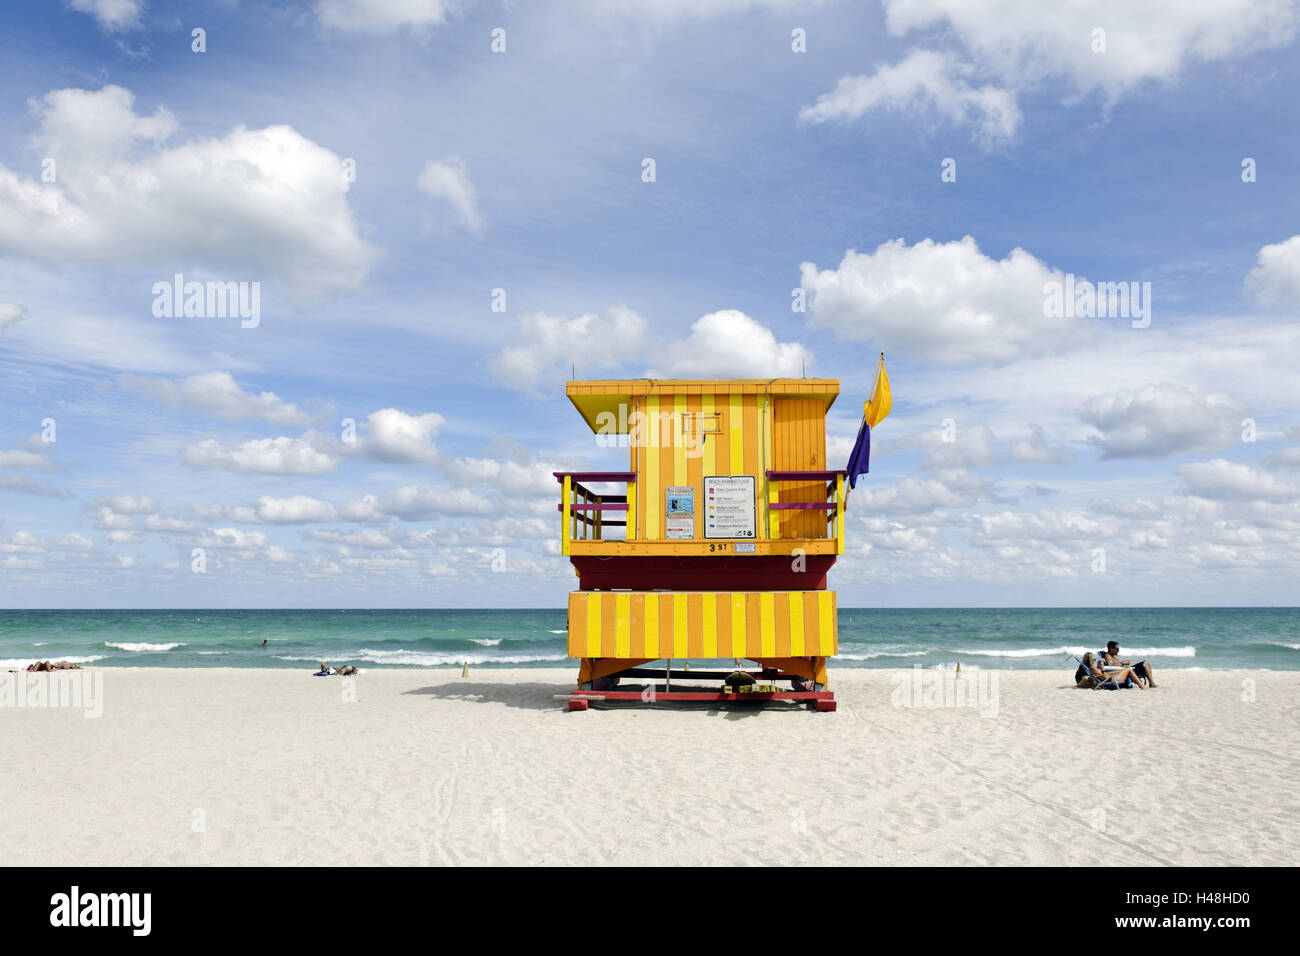 Beach watch-tower '3 PIECES', Lifeguard Tower, Atlantic, Miami South Beach, kind of Deco District, Florida, - Stock Image